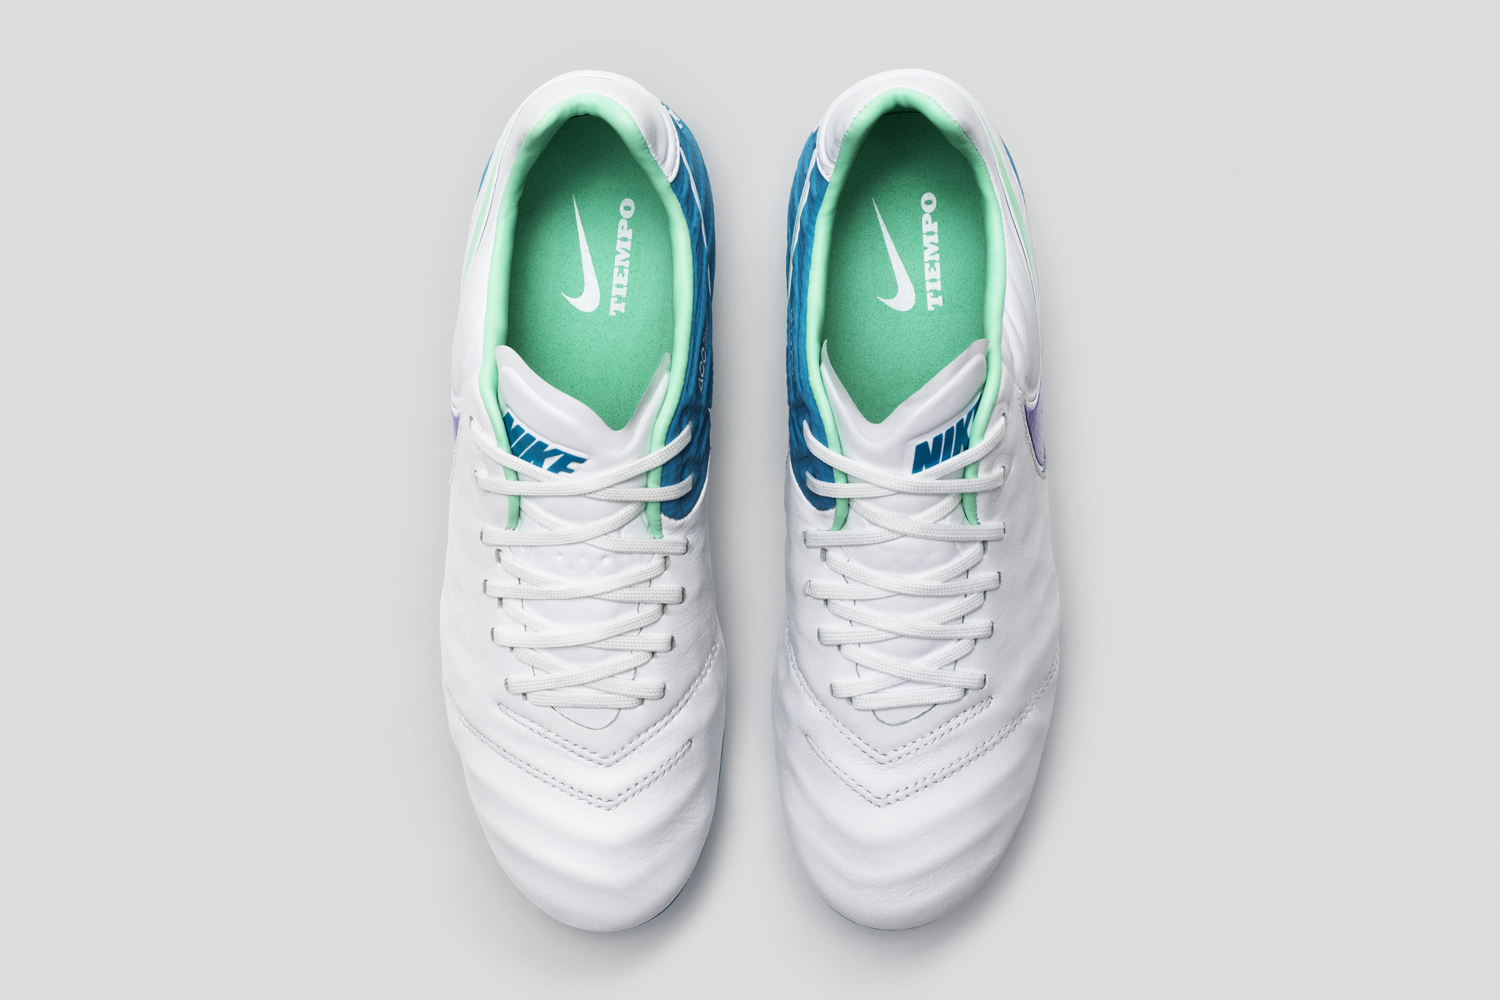 Nike_SU16_wmns_TiempoLegendVIFG_154_TOP_53106